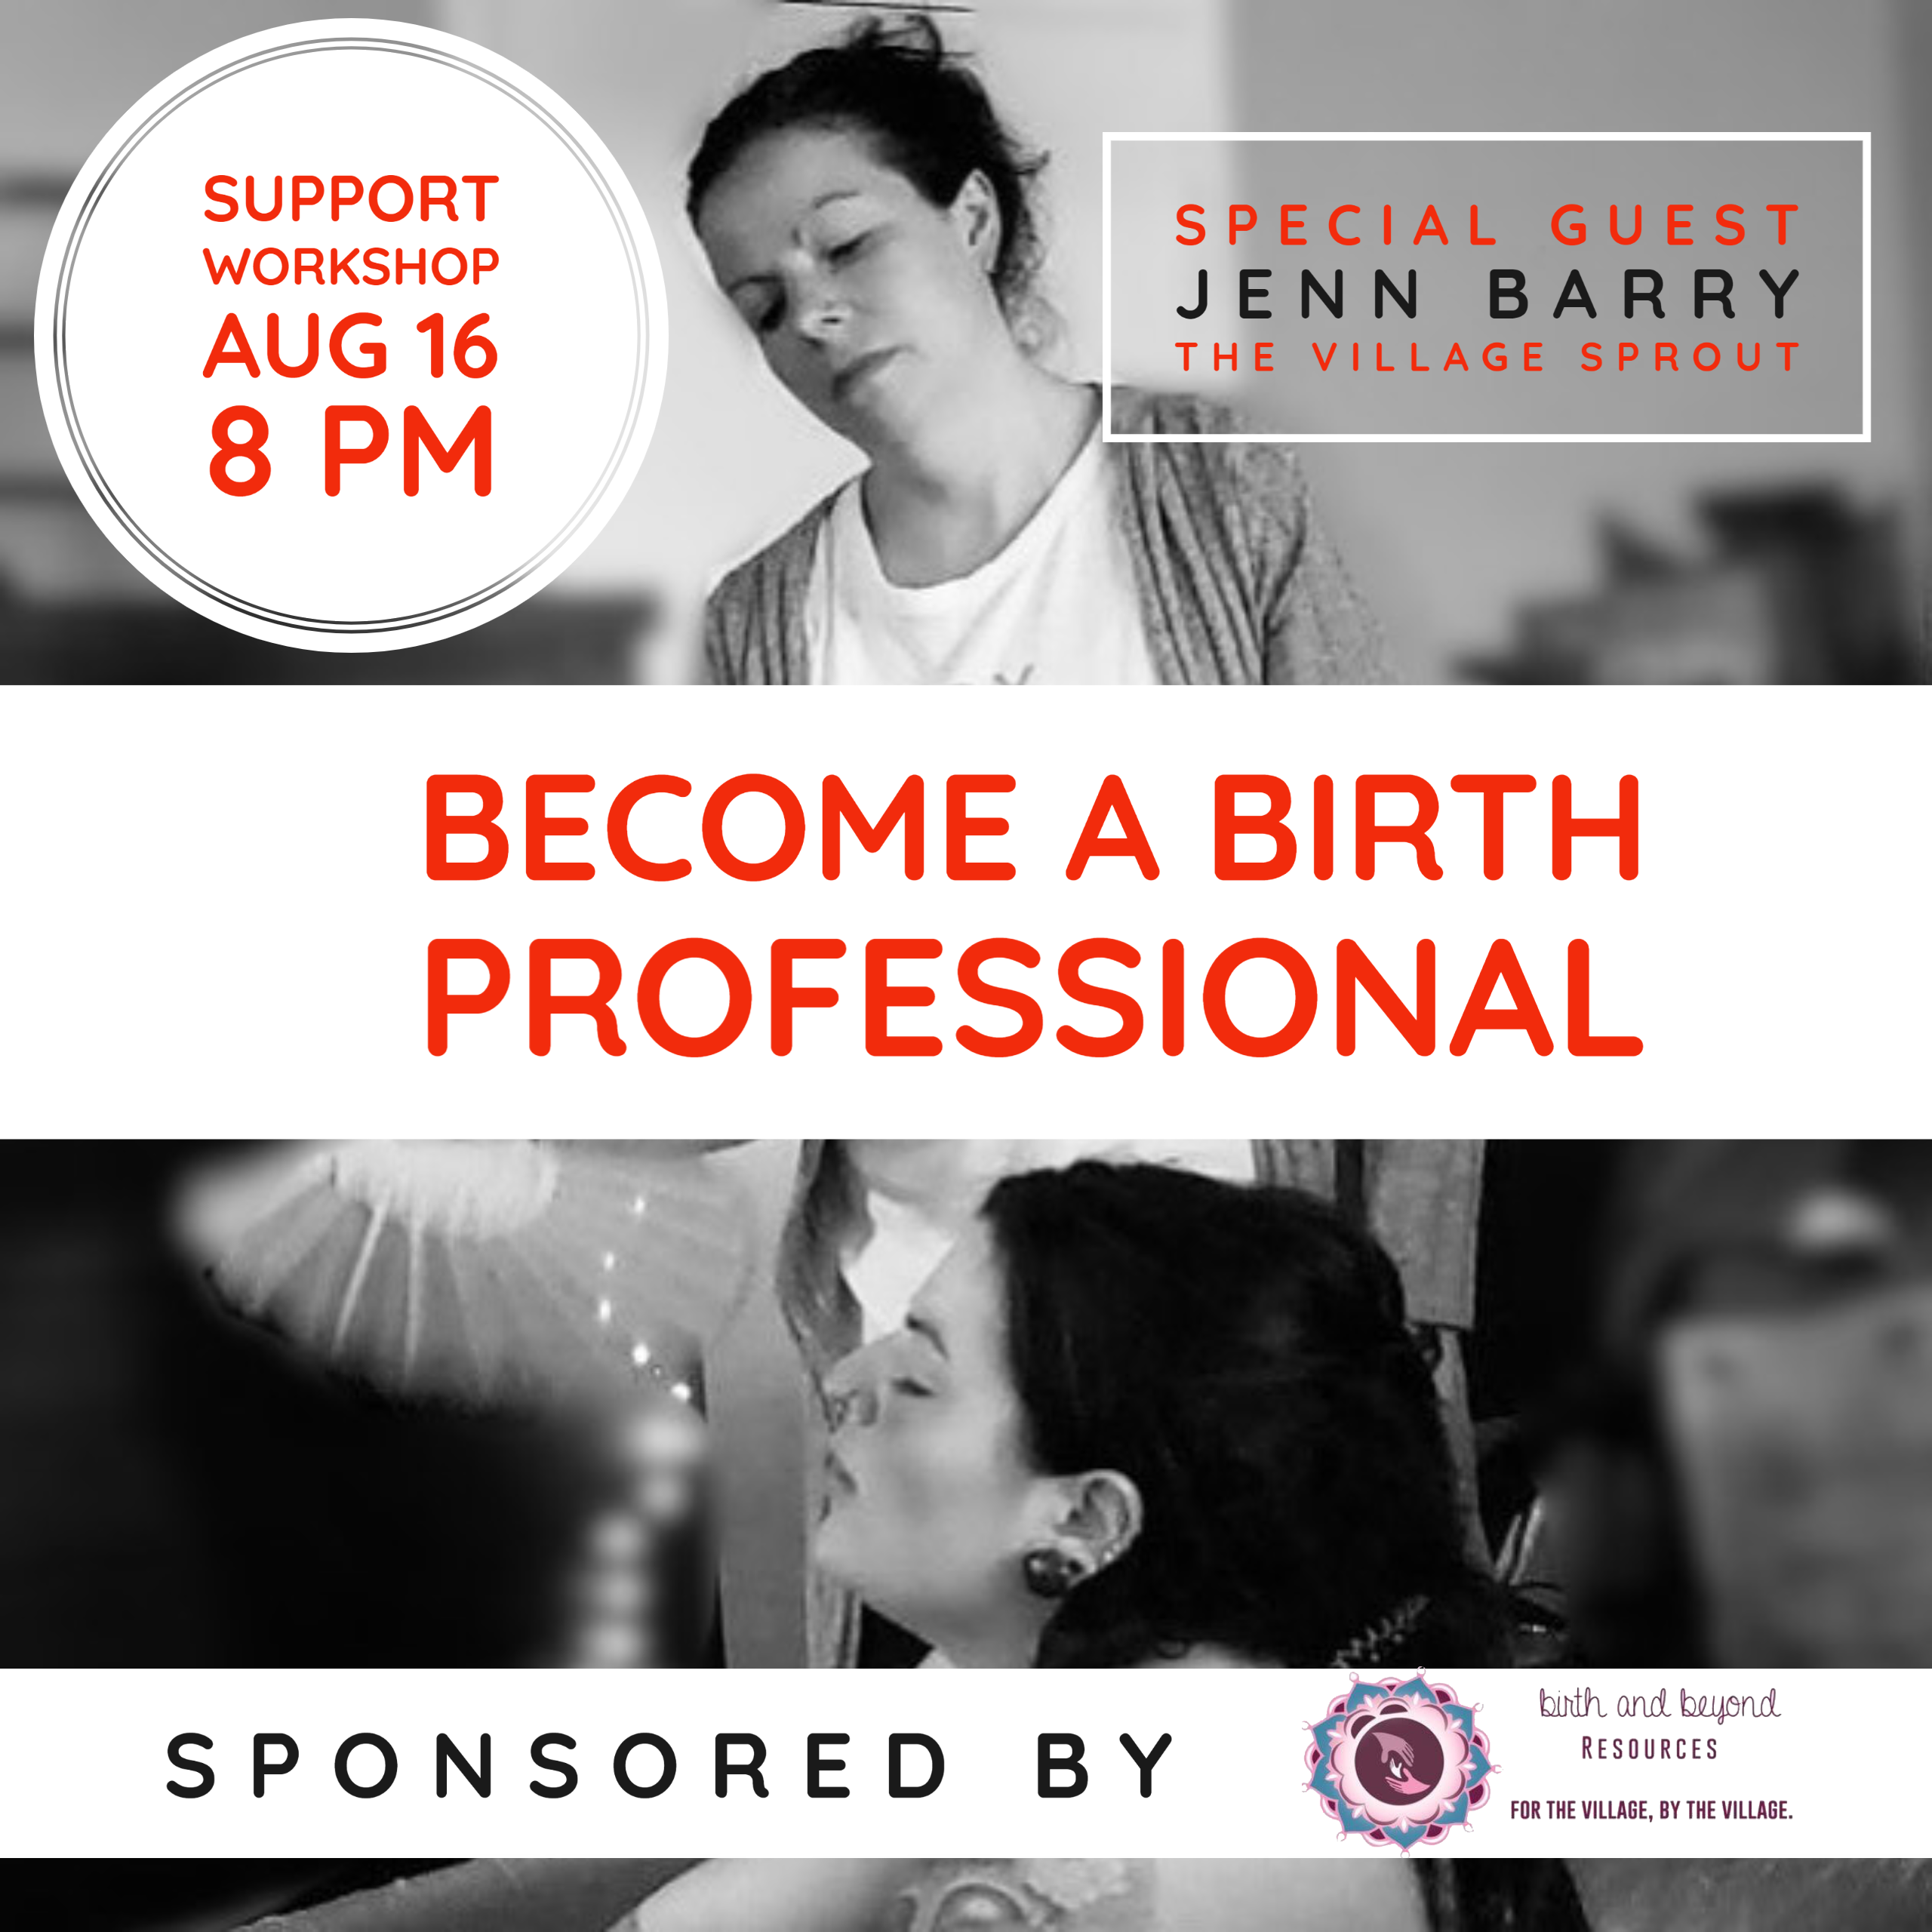 how to become a birth professional